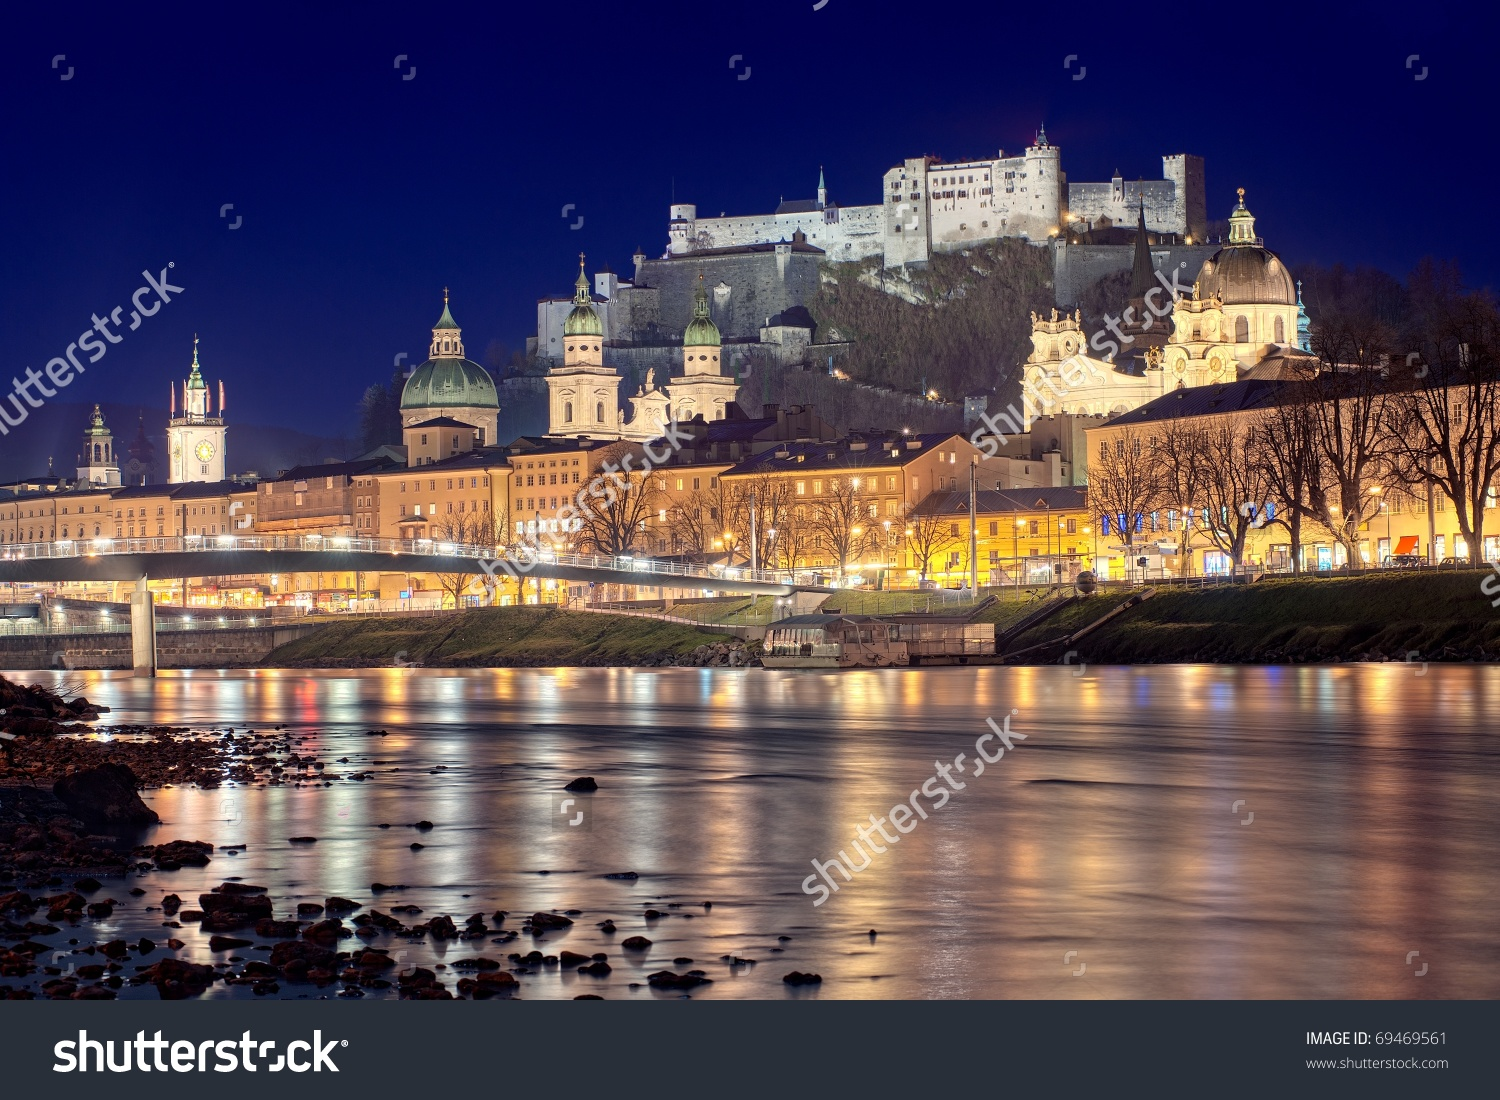 Night View Salzburg Old Town Austria Stock Photo 69469561.